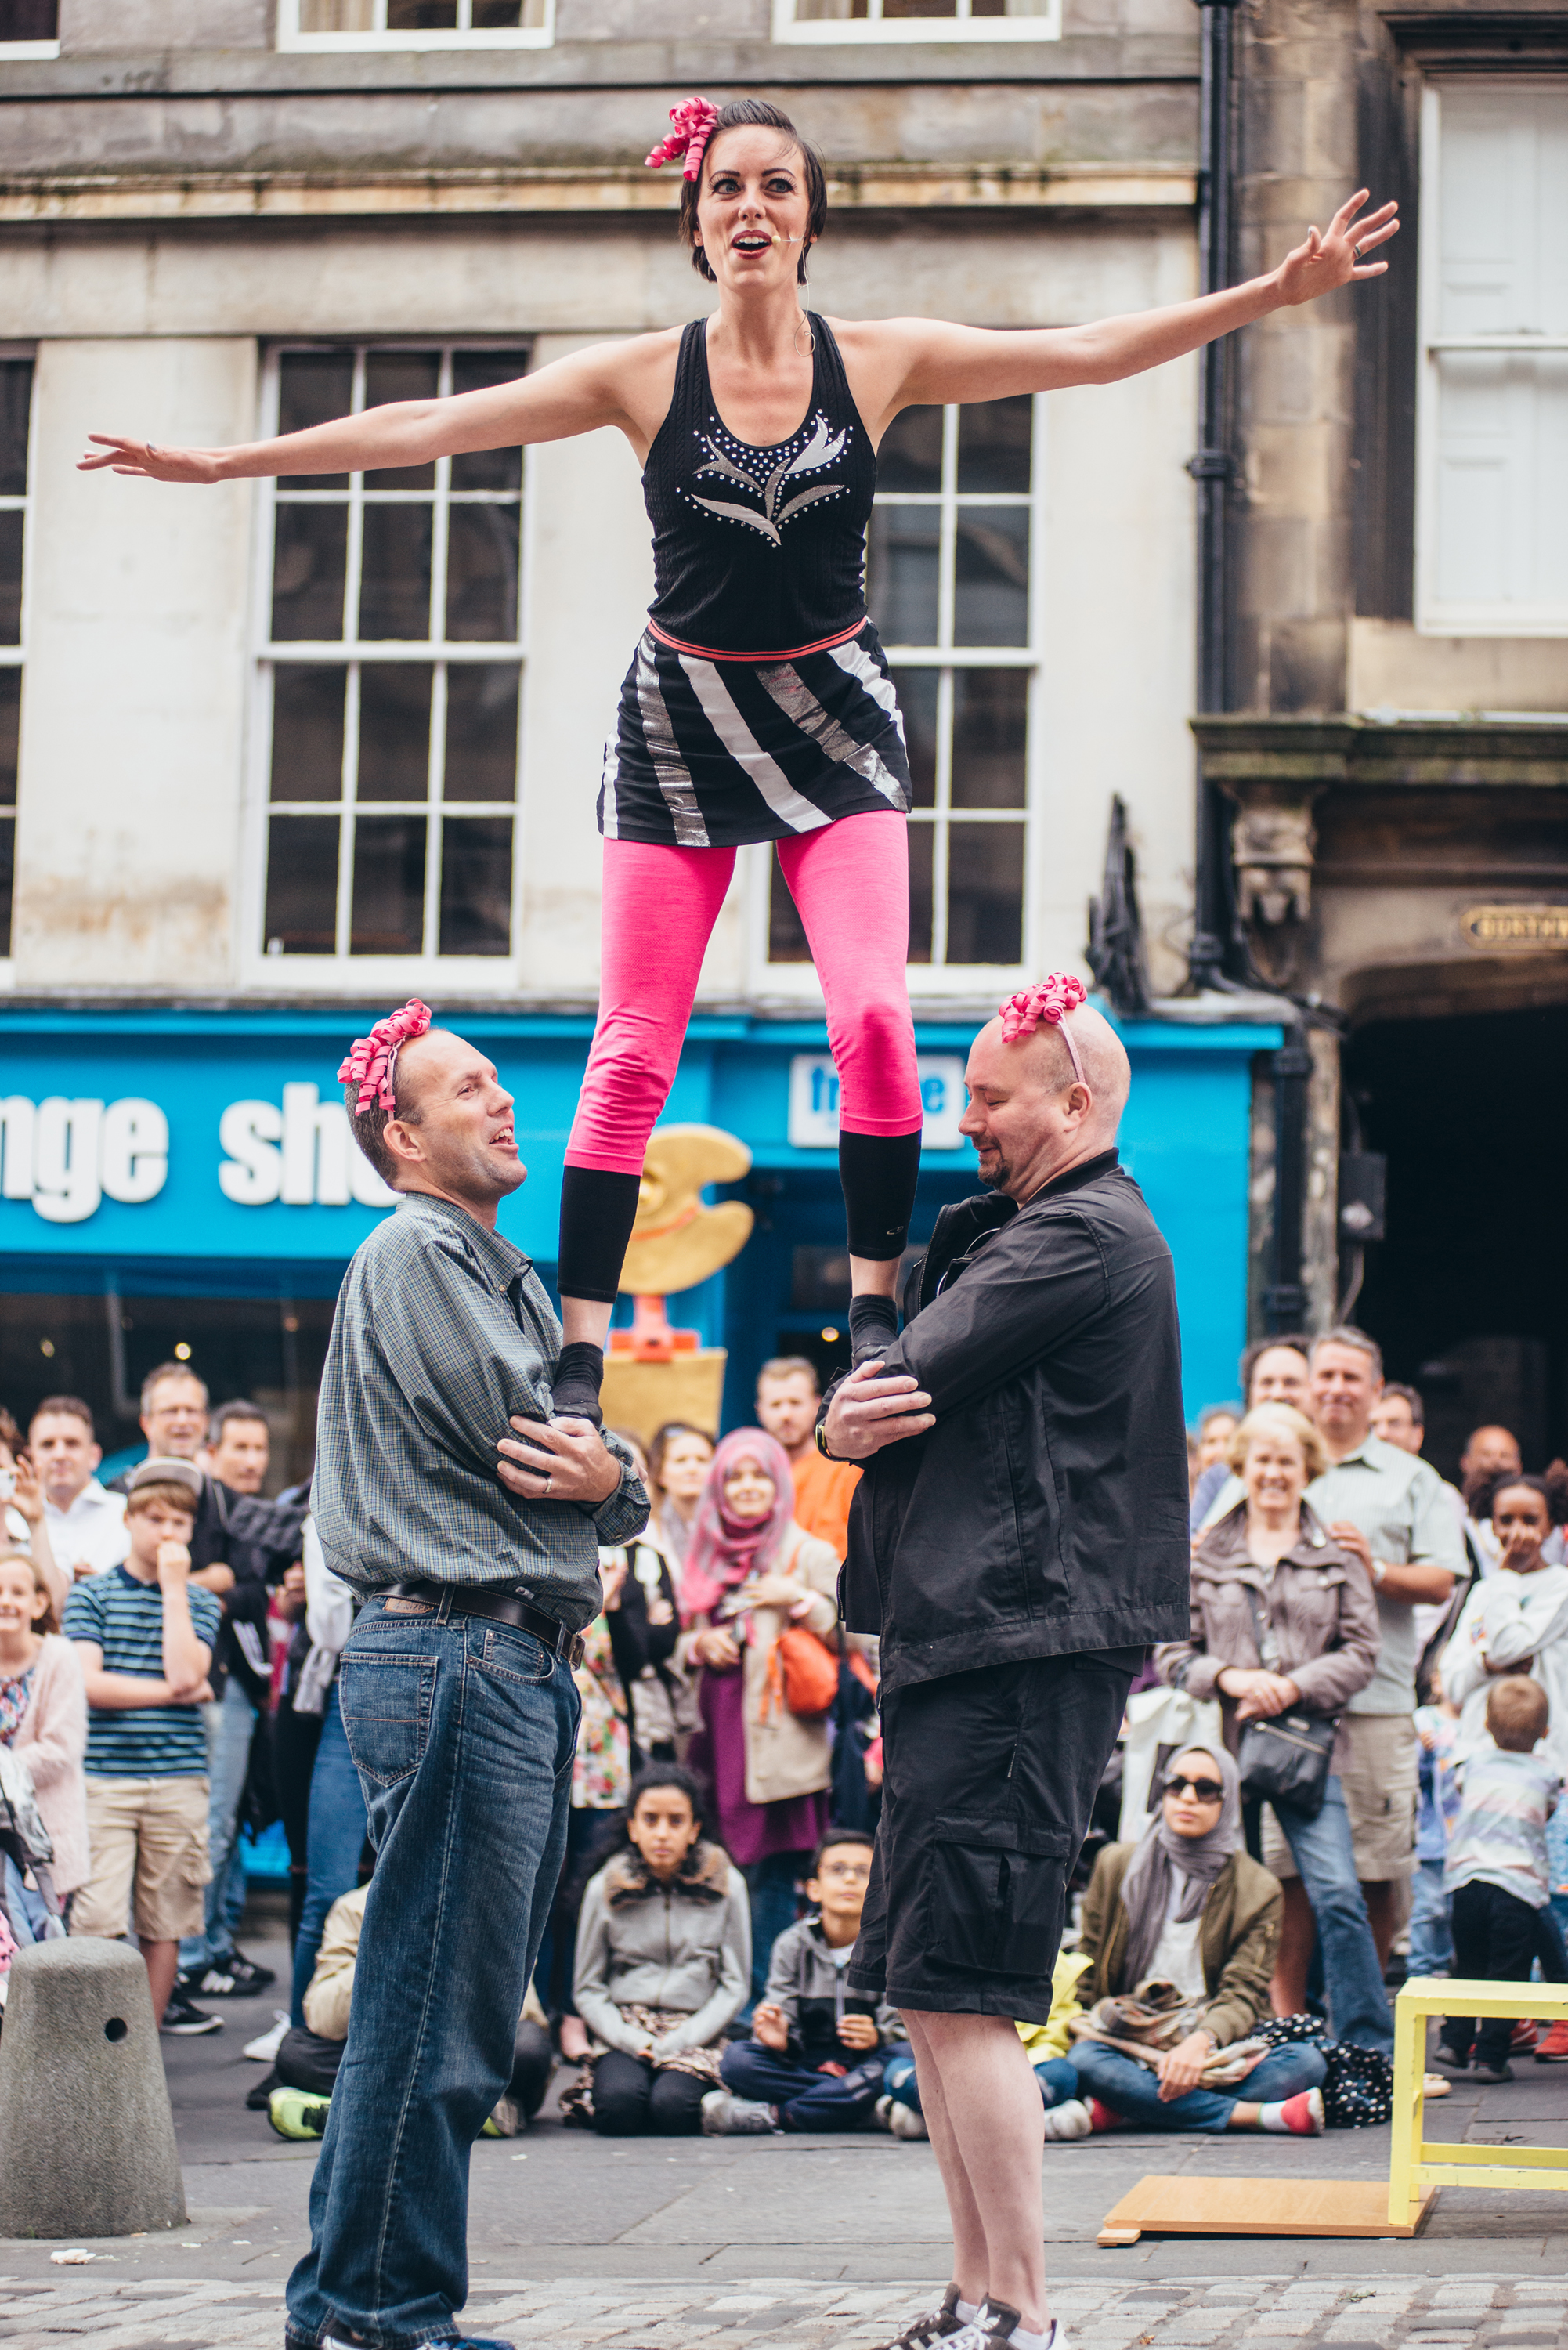 Performers on the Royal Mile ©Edinburgh Festival Fringe Society